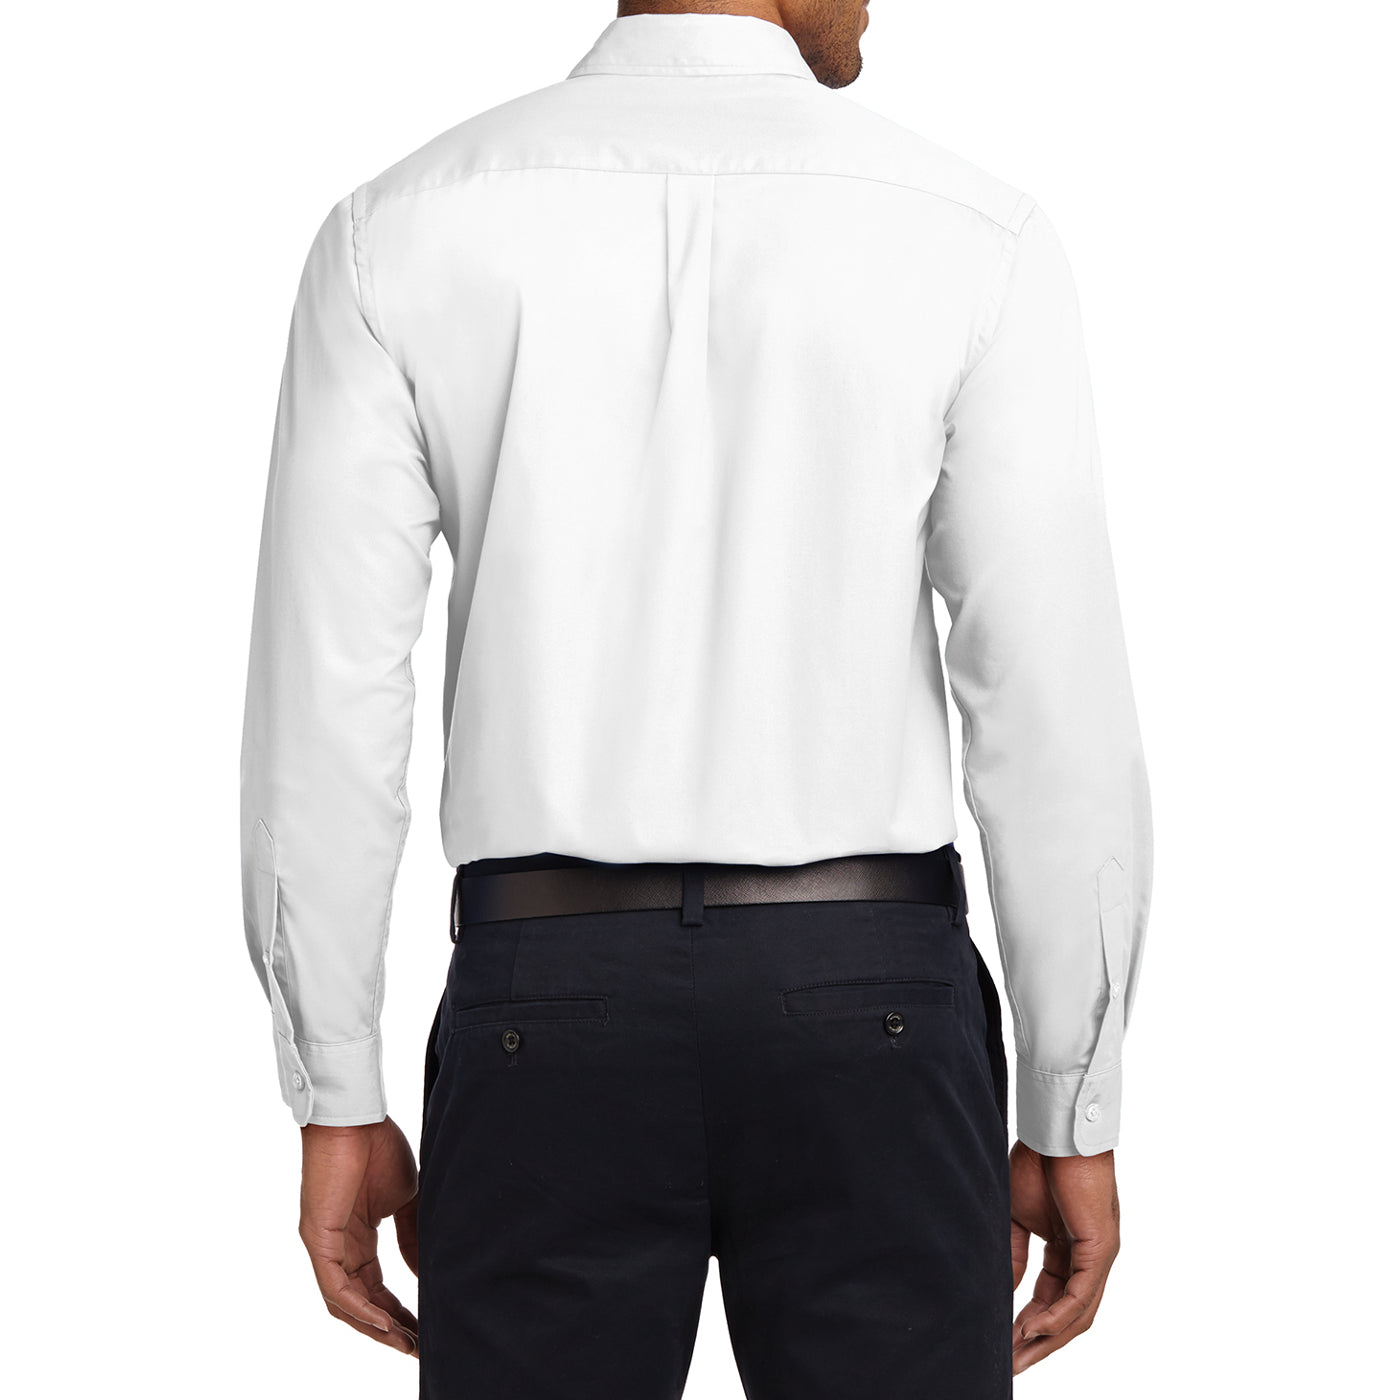 Men's Long Sleeve Easy Care Shirt - White/ Light Stone - Back